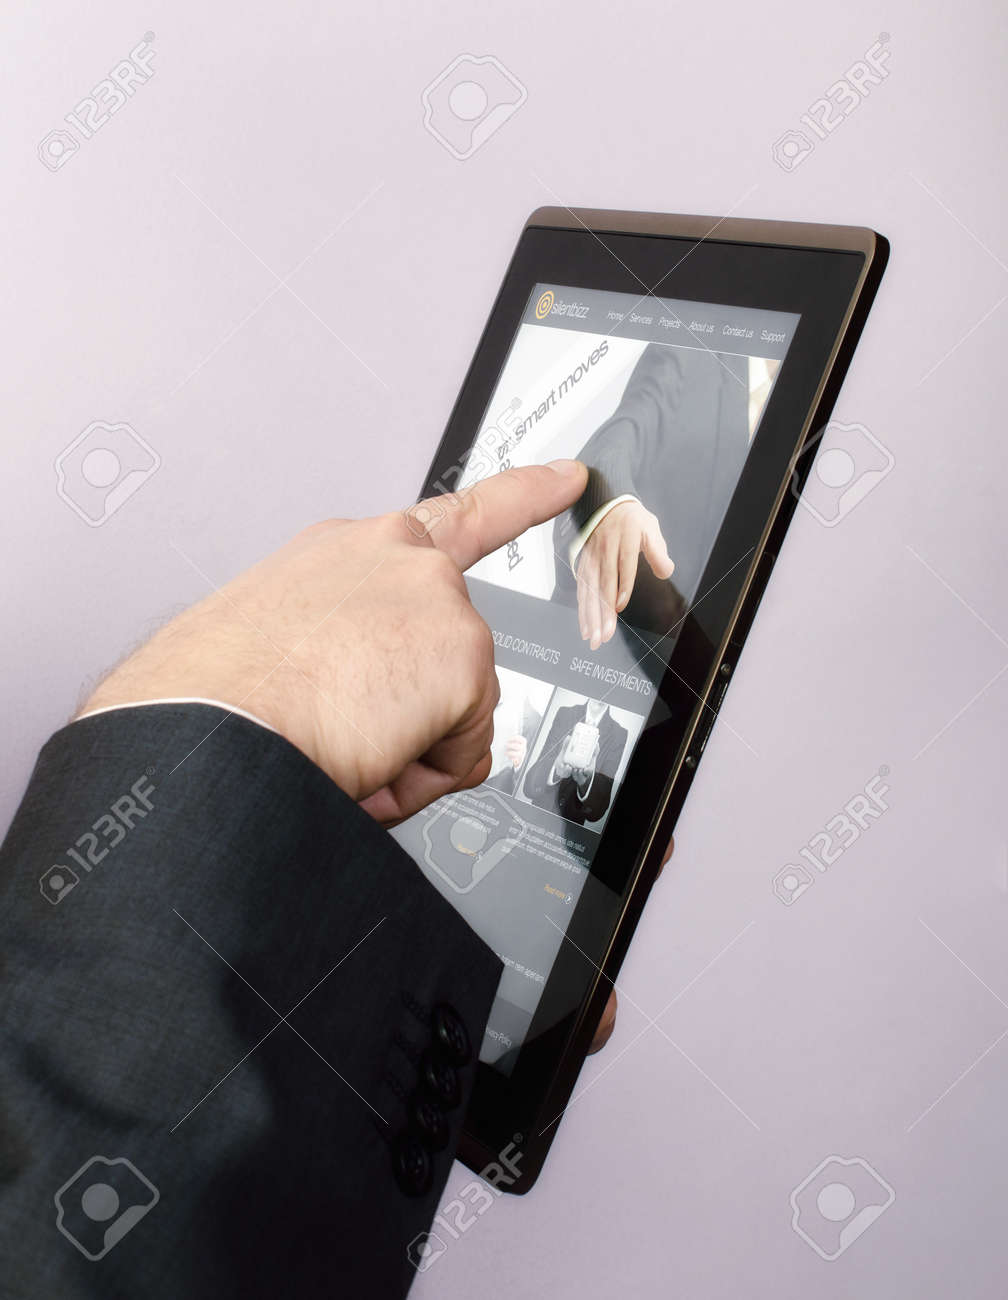 Finger touching screen on tablet-pc and browsing a website.The Website from the image was created by me and the pictures used can be found in my portfolio Stock Photo - 17597536